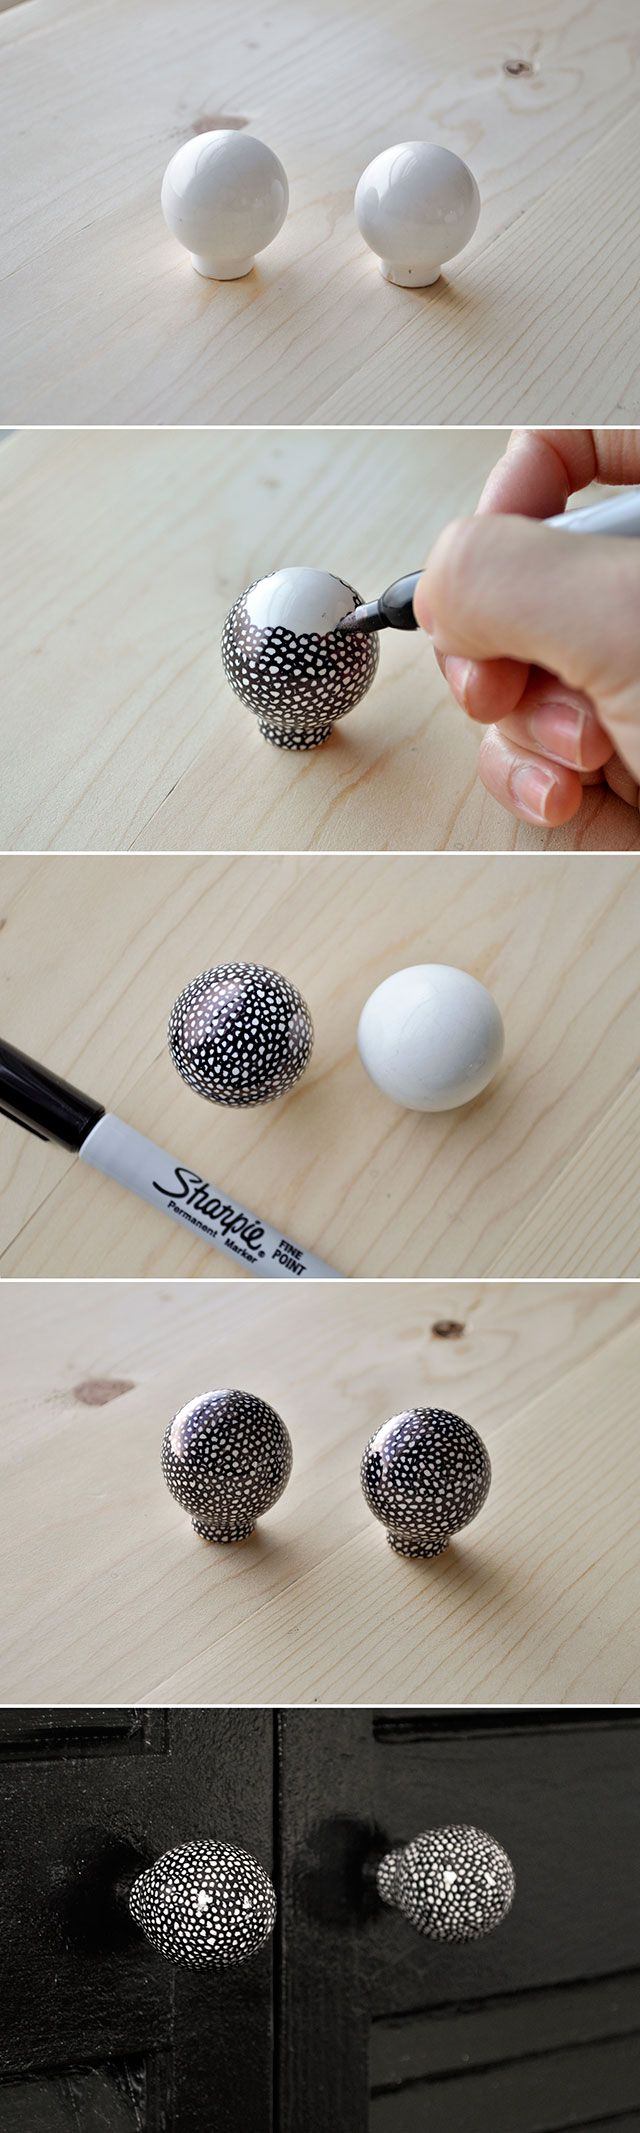 use a sharpie to draw little circles on plain white ceramic knobs for a fun speckled look